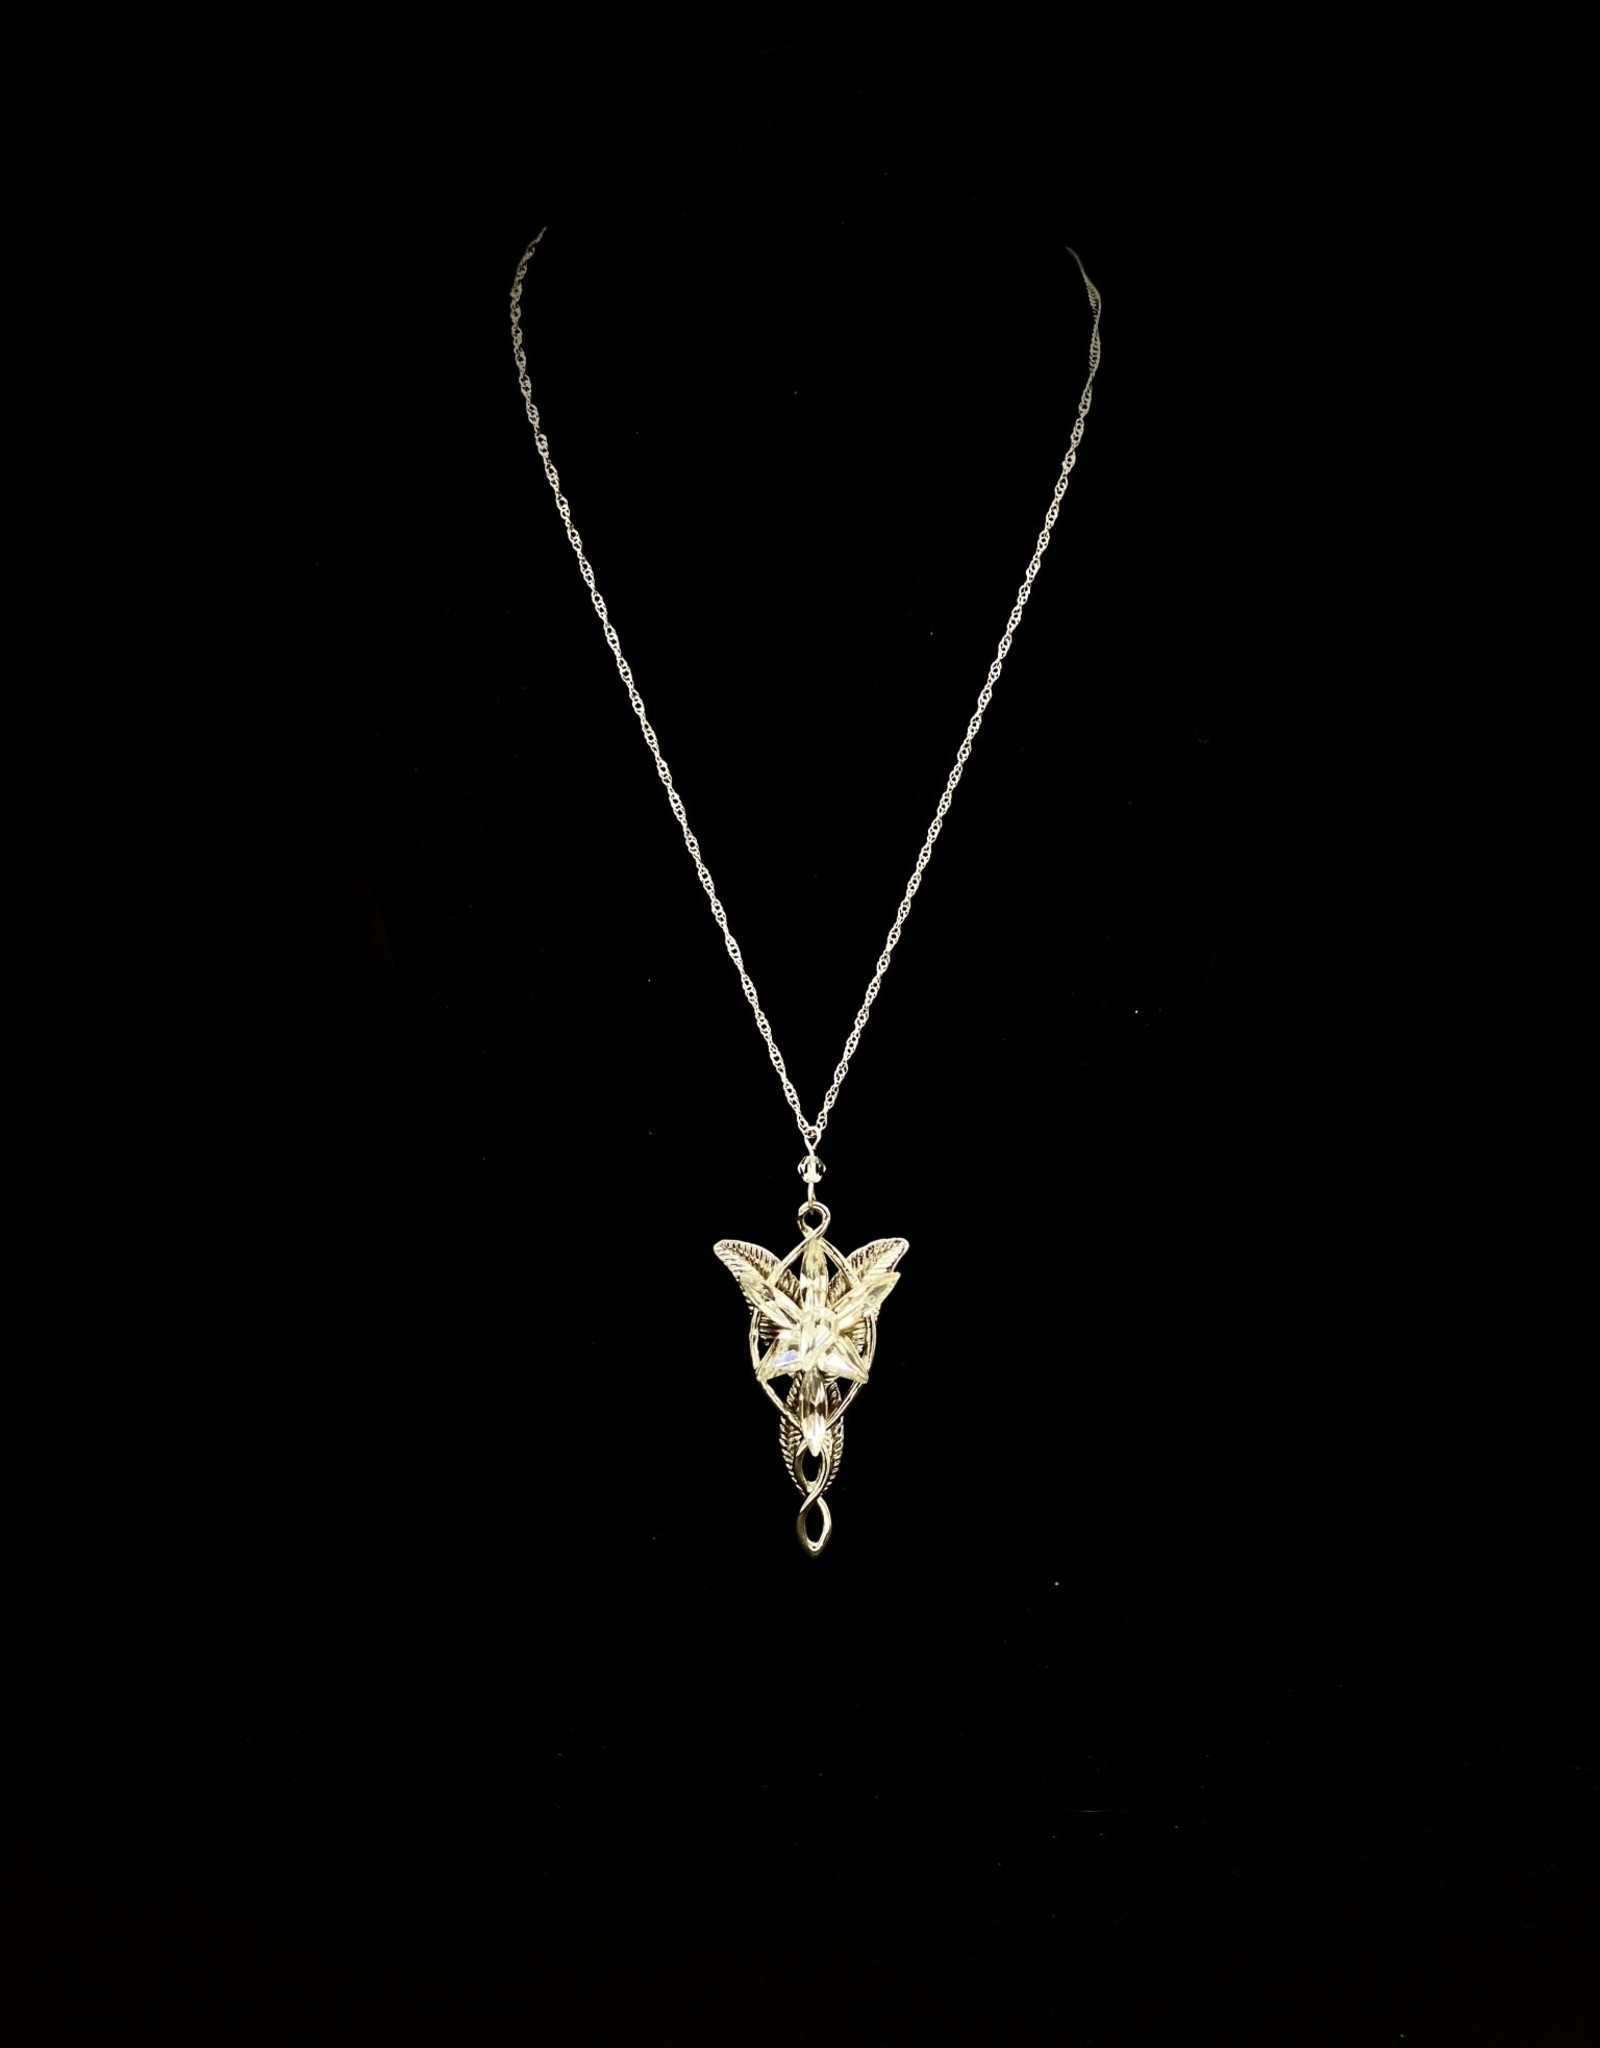 Lord of the Rings Elvish Necklace